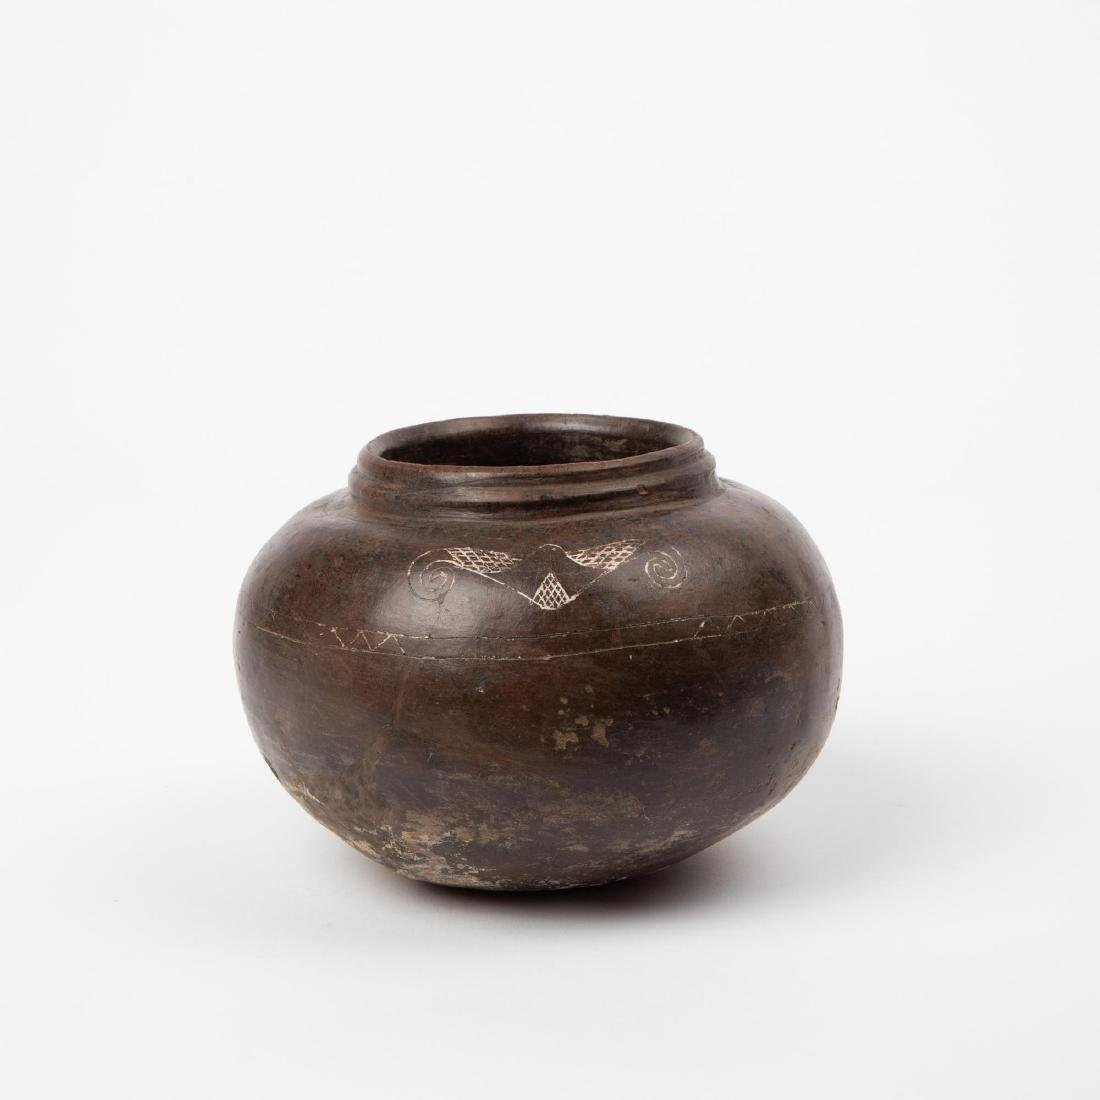 A TAIRONA INCISED BLACKWARE VESSEL WITH WHITE